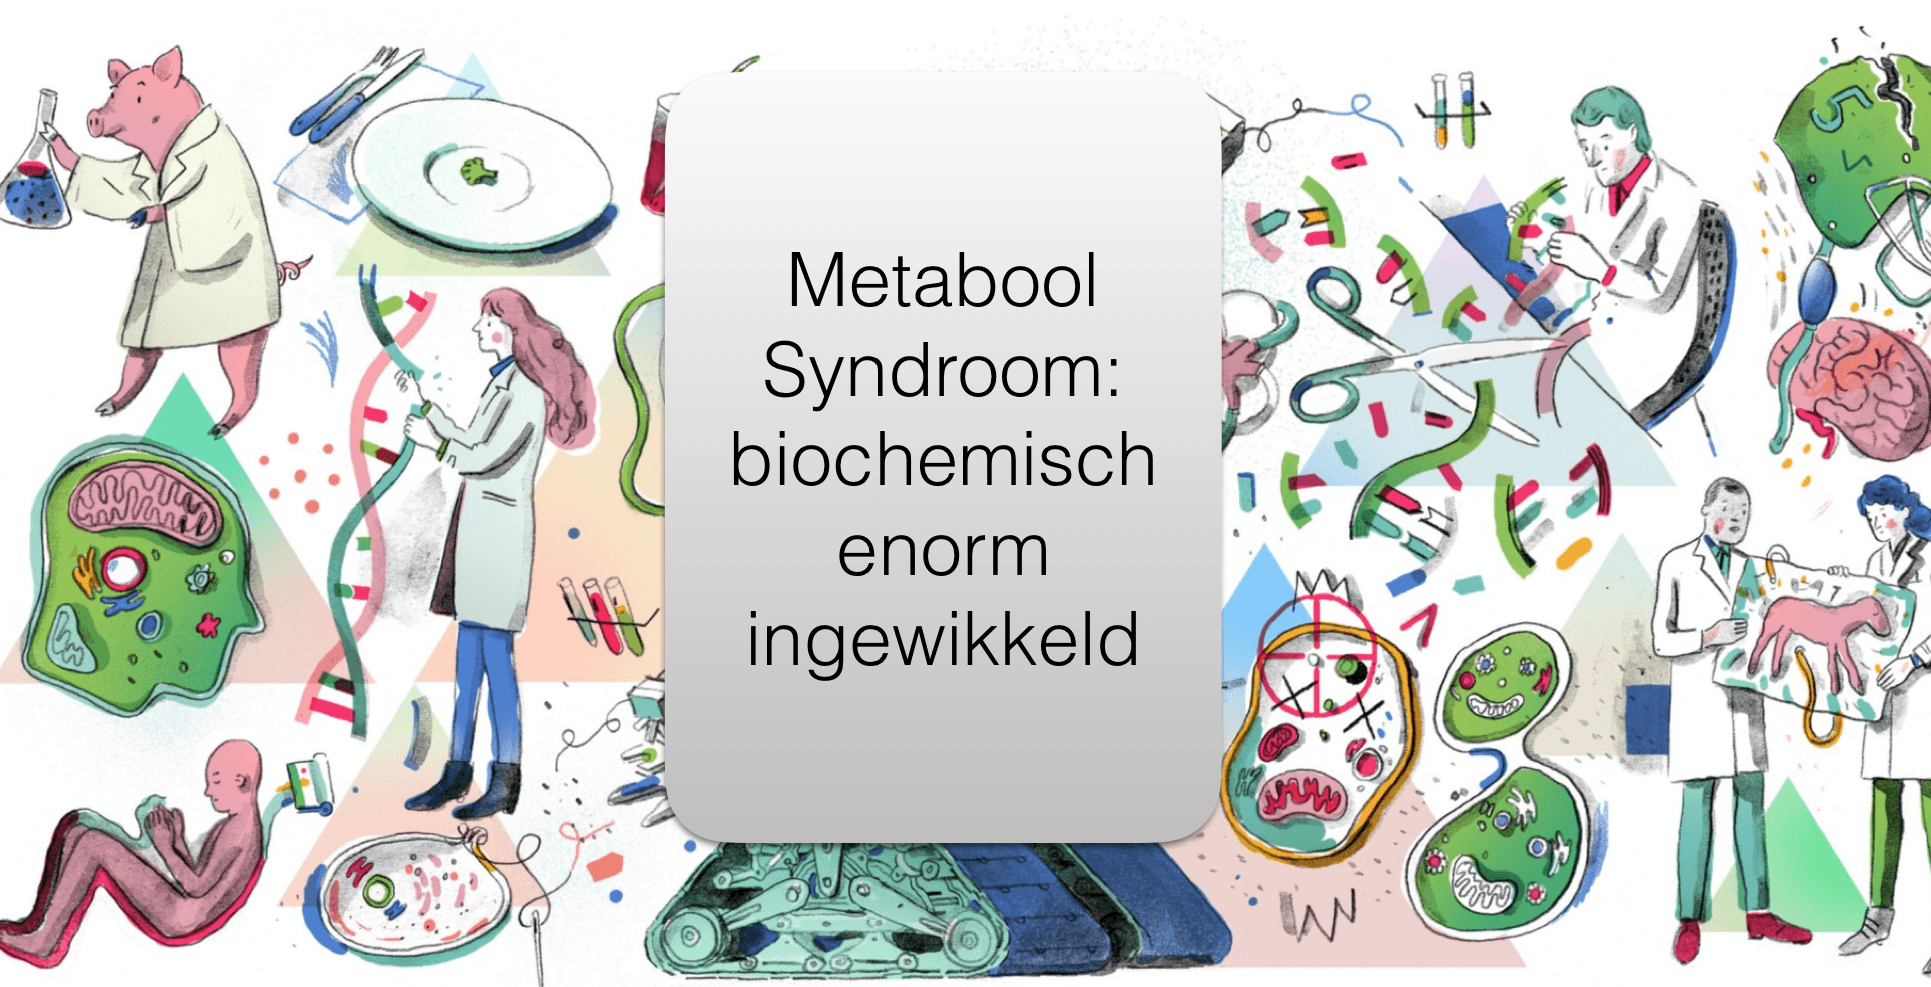 Metabool-syndroom